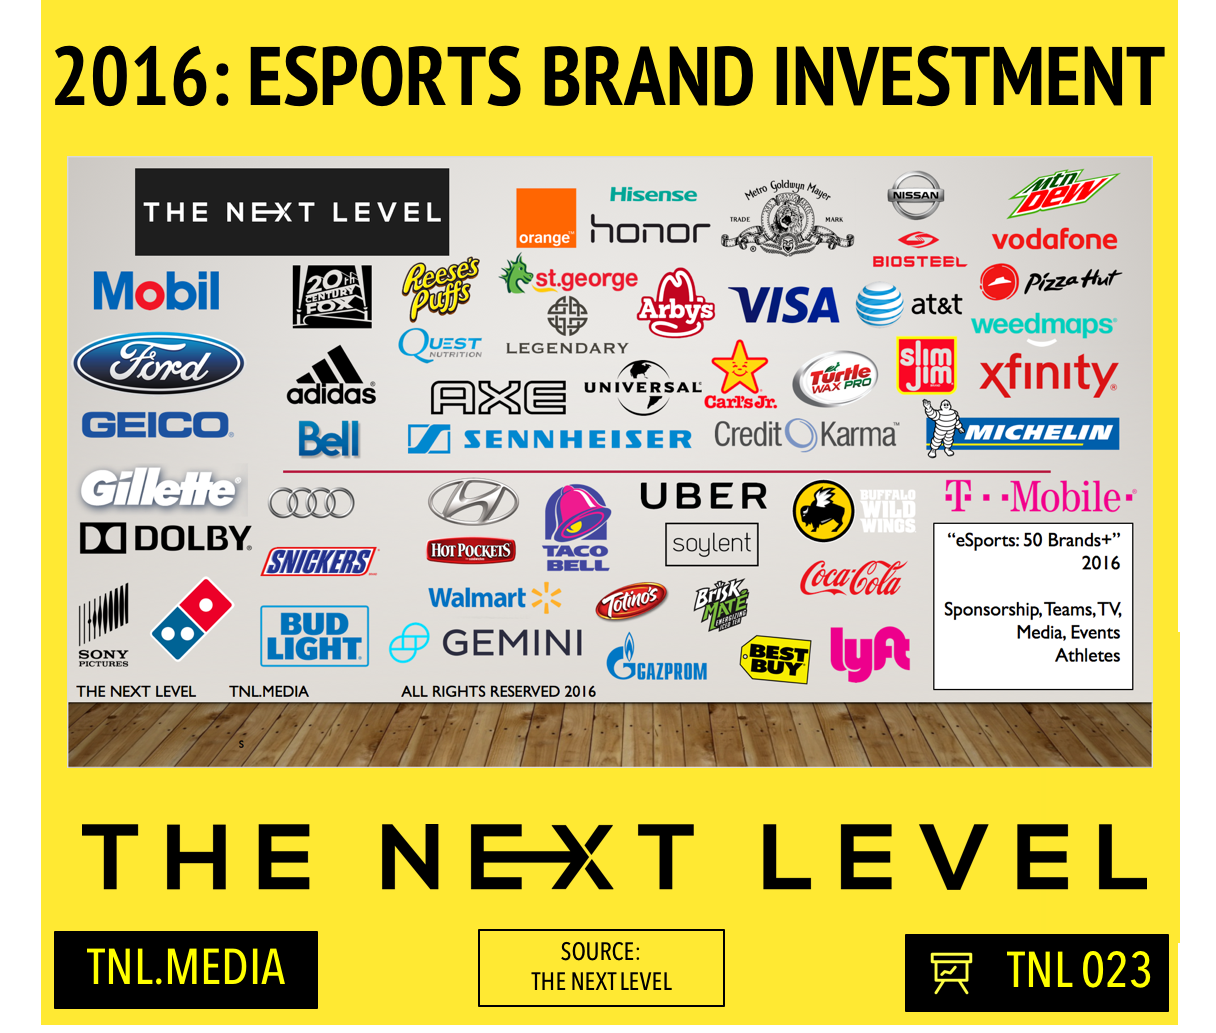 TNL Infographic 032: 2016 eSports Brand Investment (Graphic: Jordan Fragen)